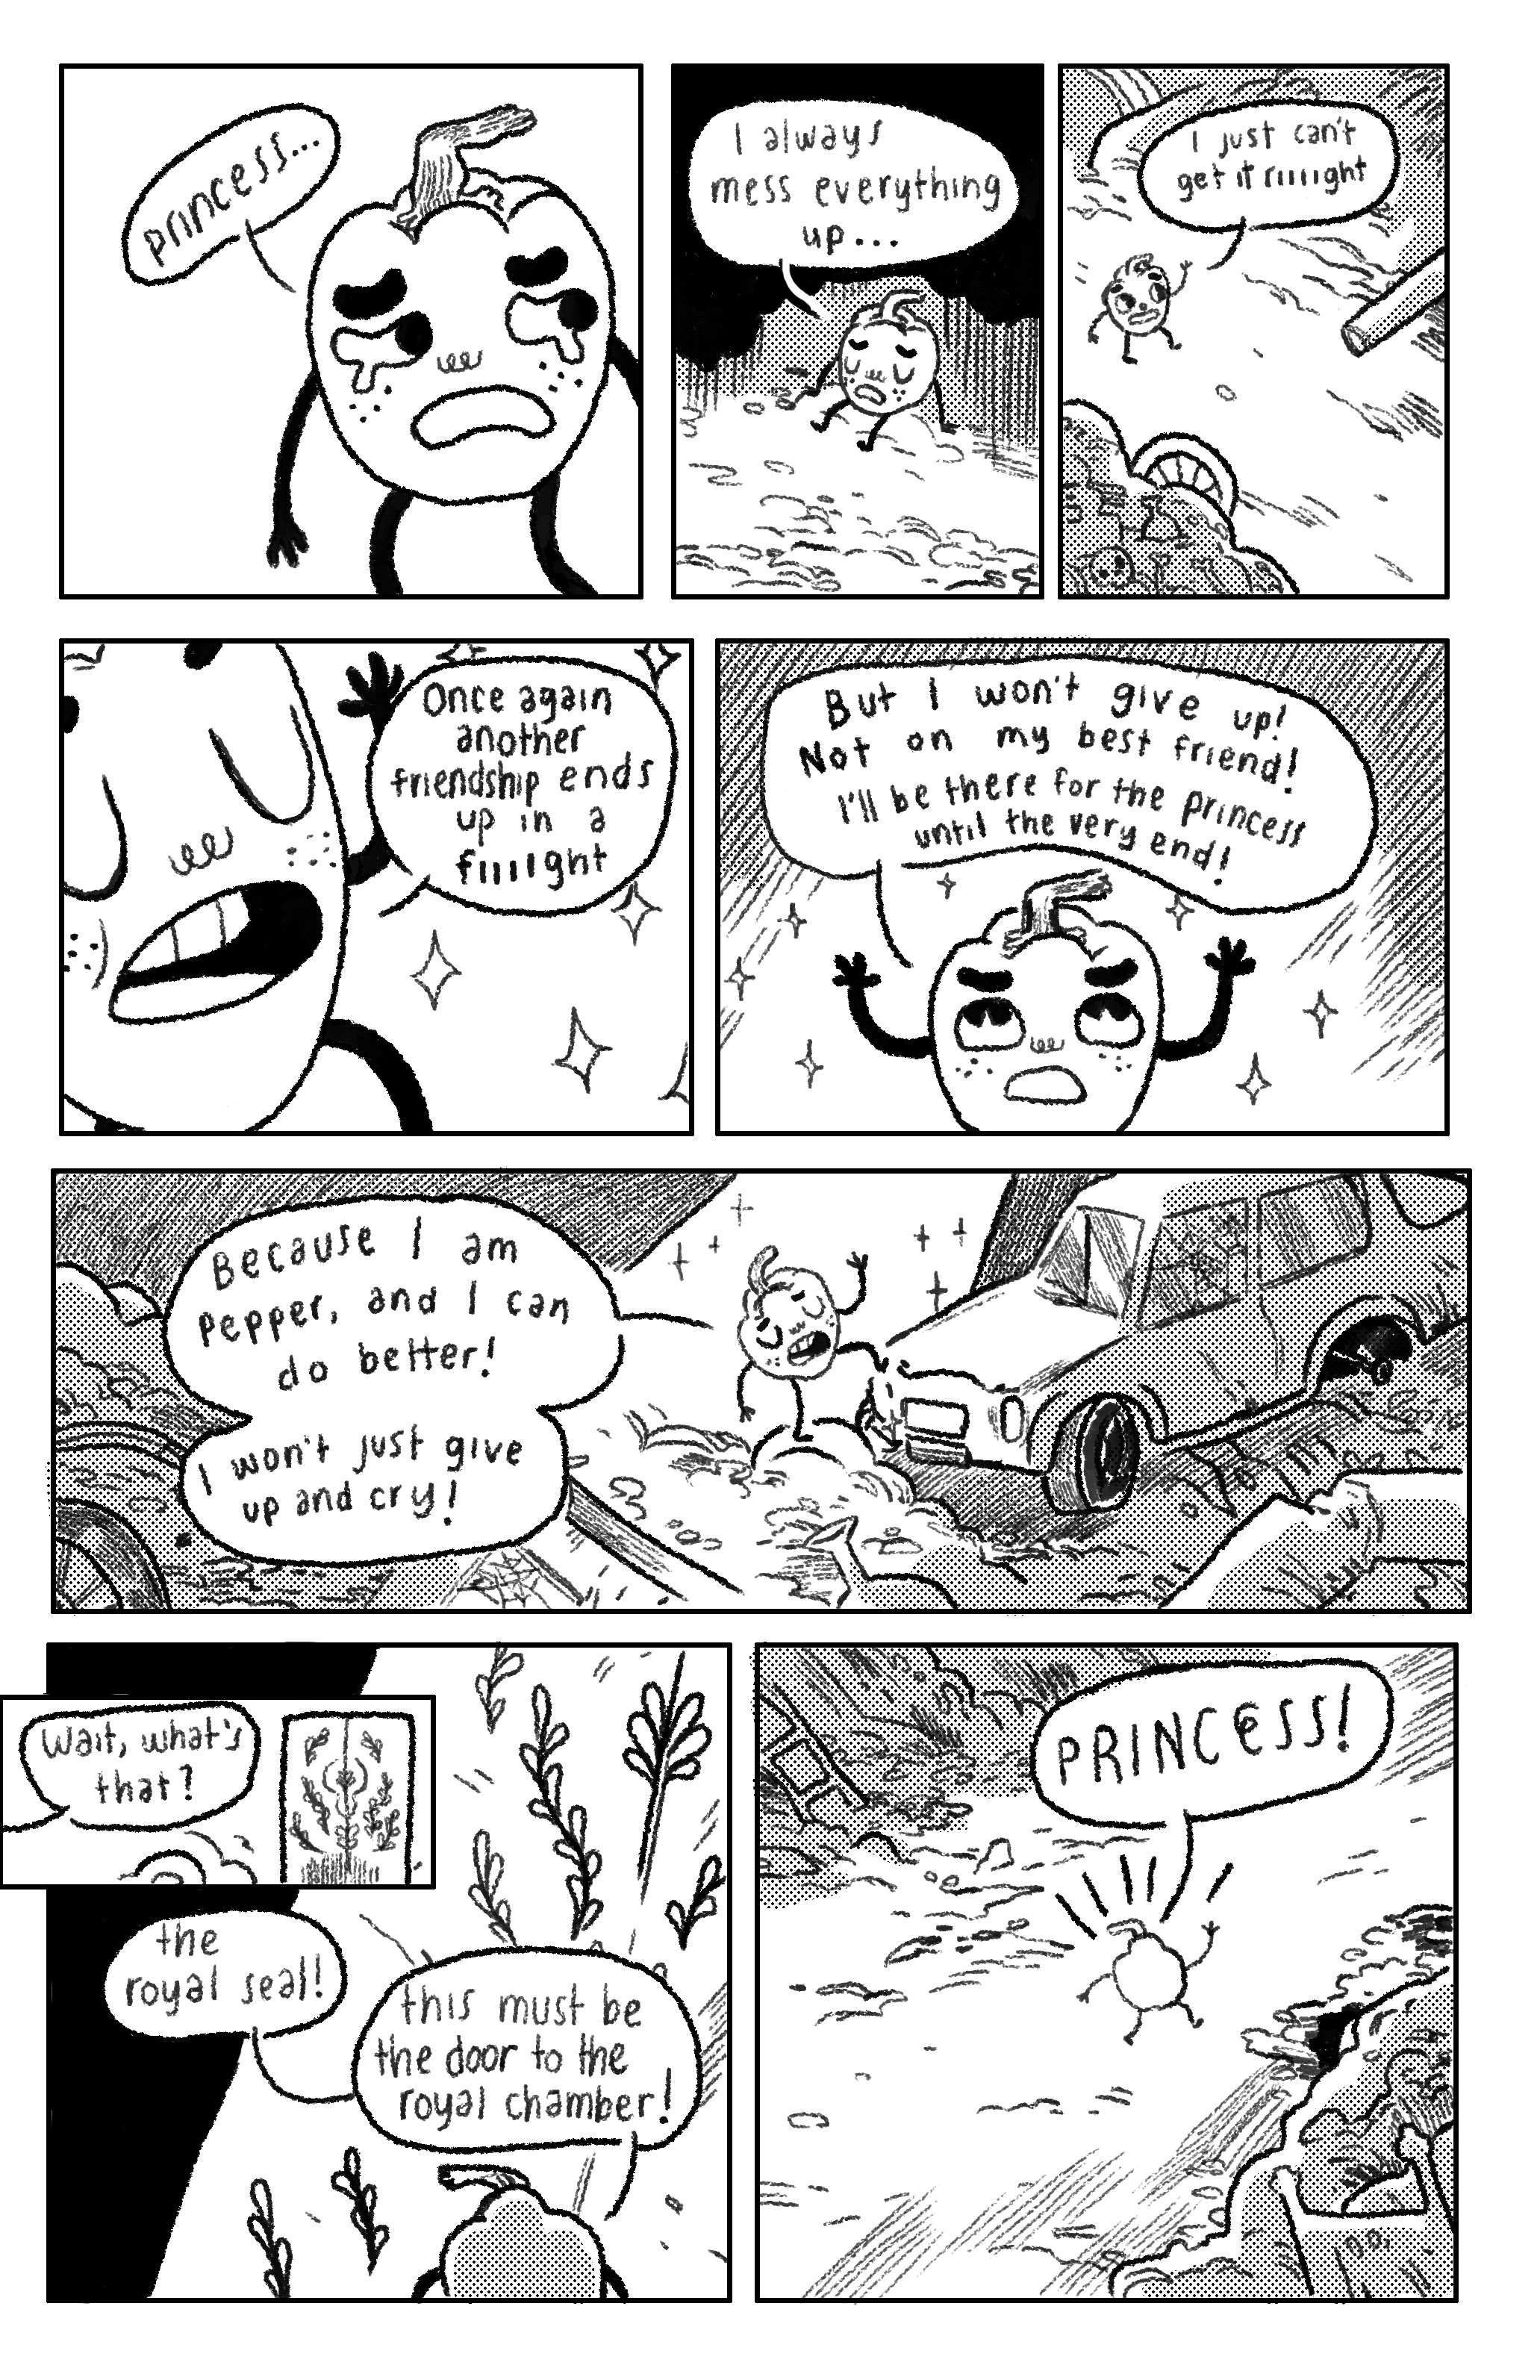 Princess and Pepper Page 5.jpg